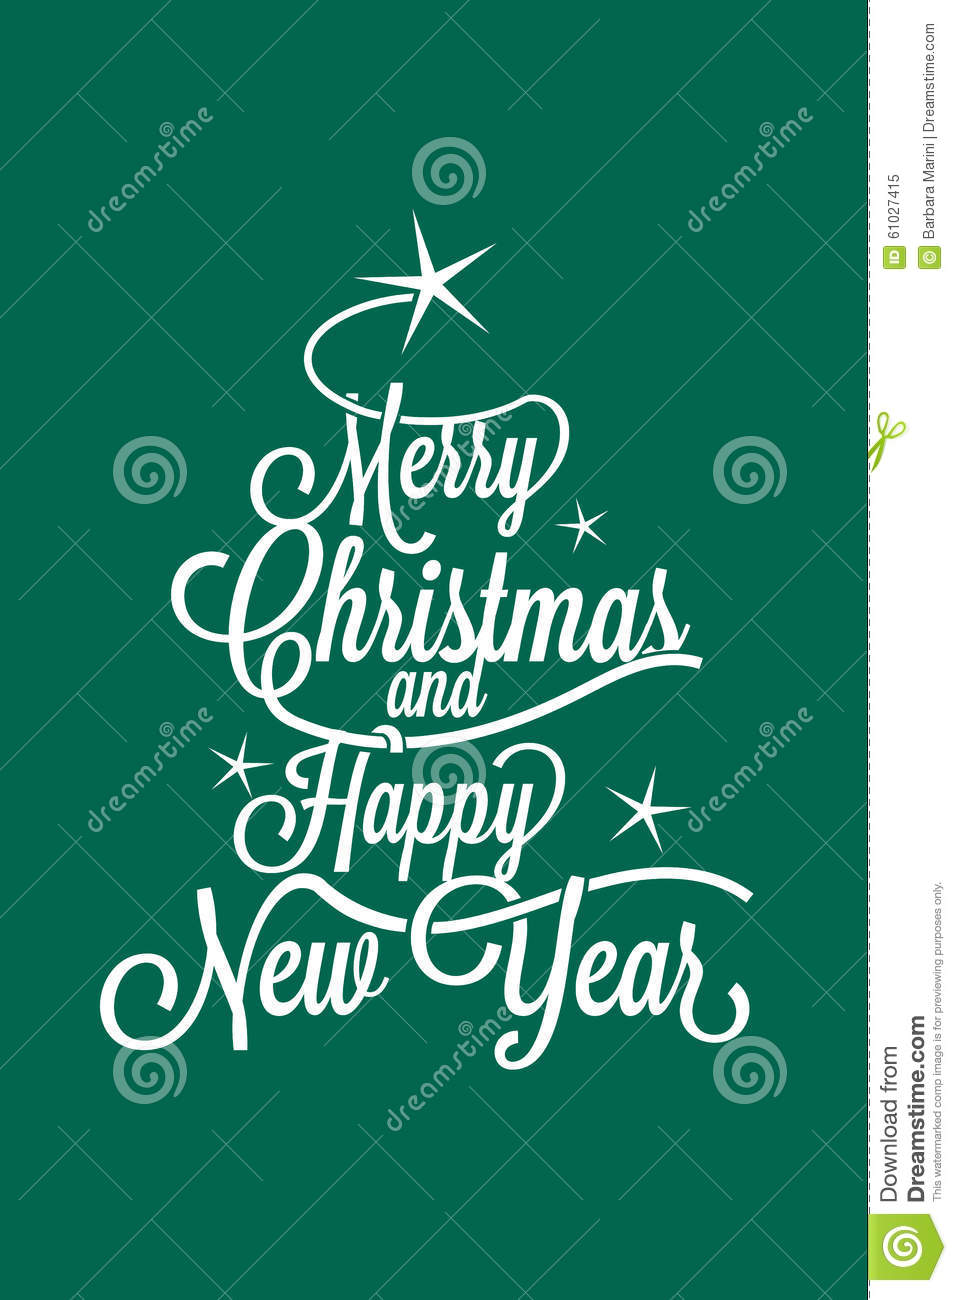 Merry christmas and happy new year greetings postcard stock vector merry christmas and happy new year greetings postcard m4hsunfo